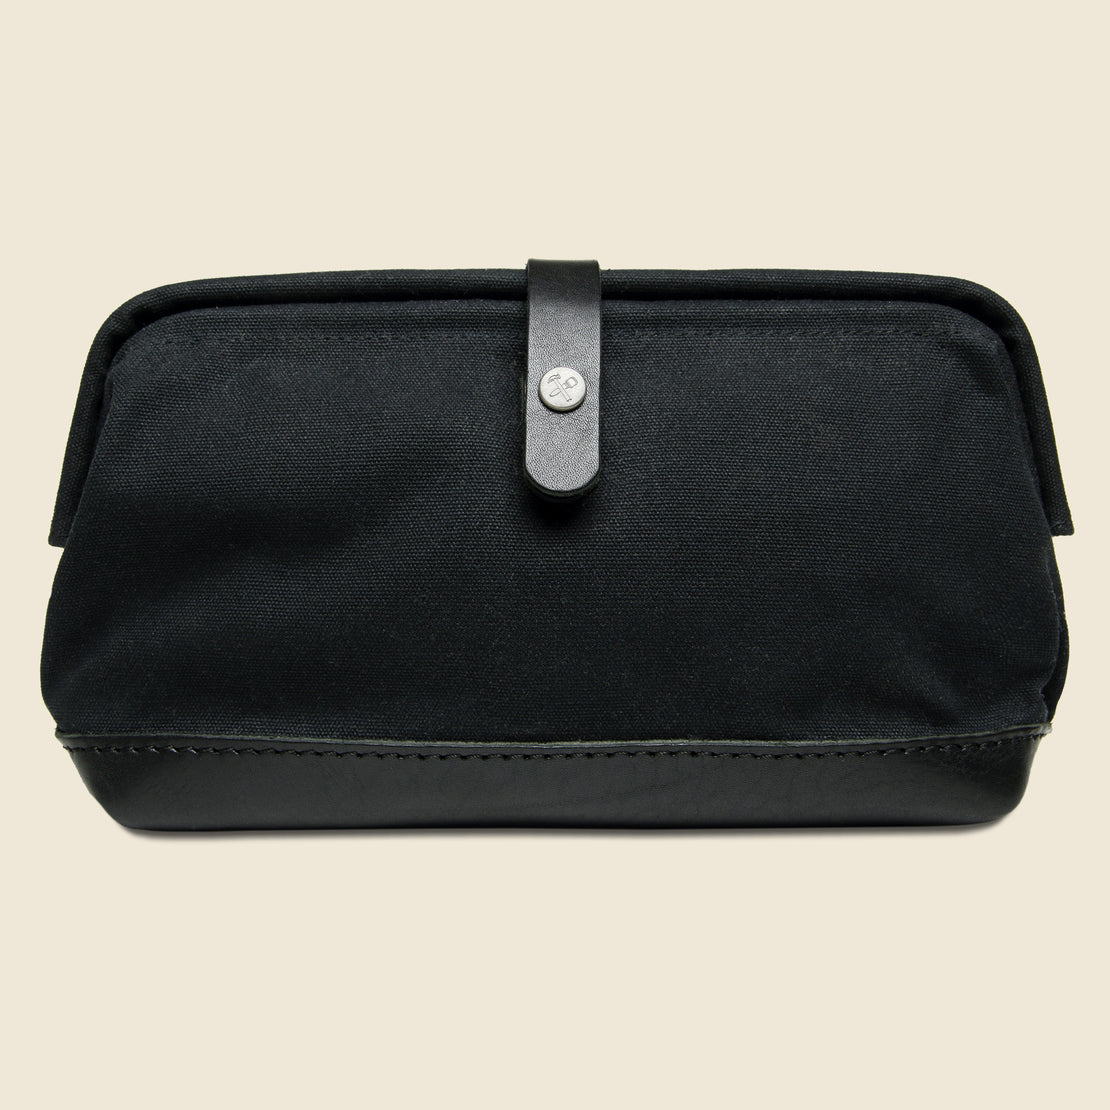 BILLYKIRK No. 257 Snap Dopp Kit - Black Waxed